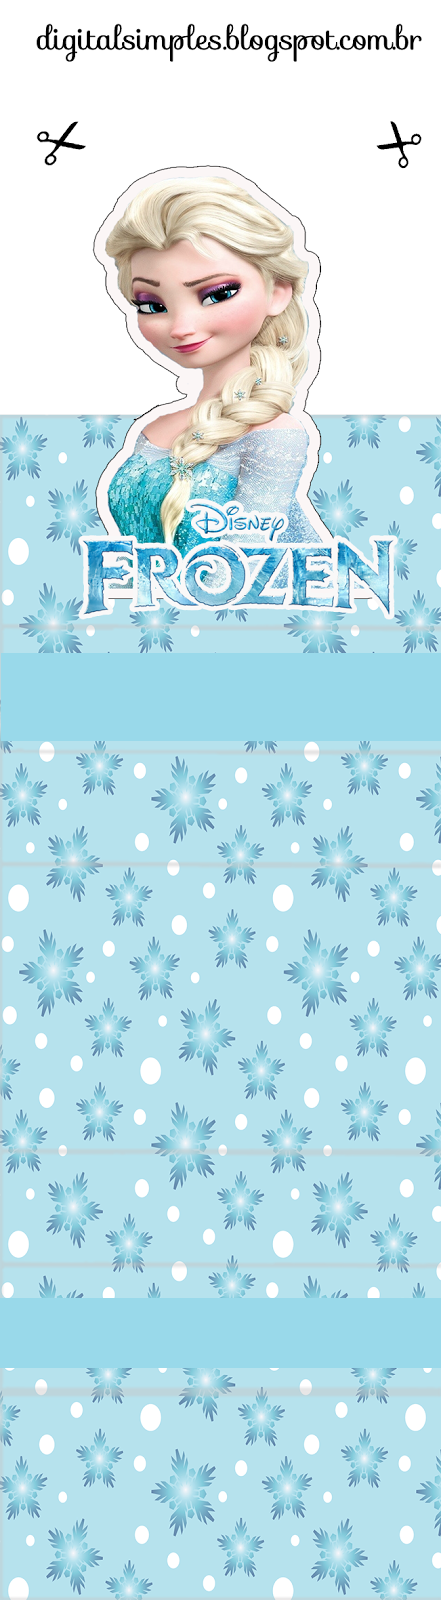 Frozen free printable original nuggets or gum wrappers oh my